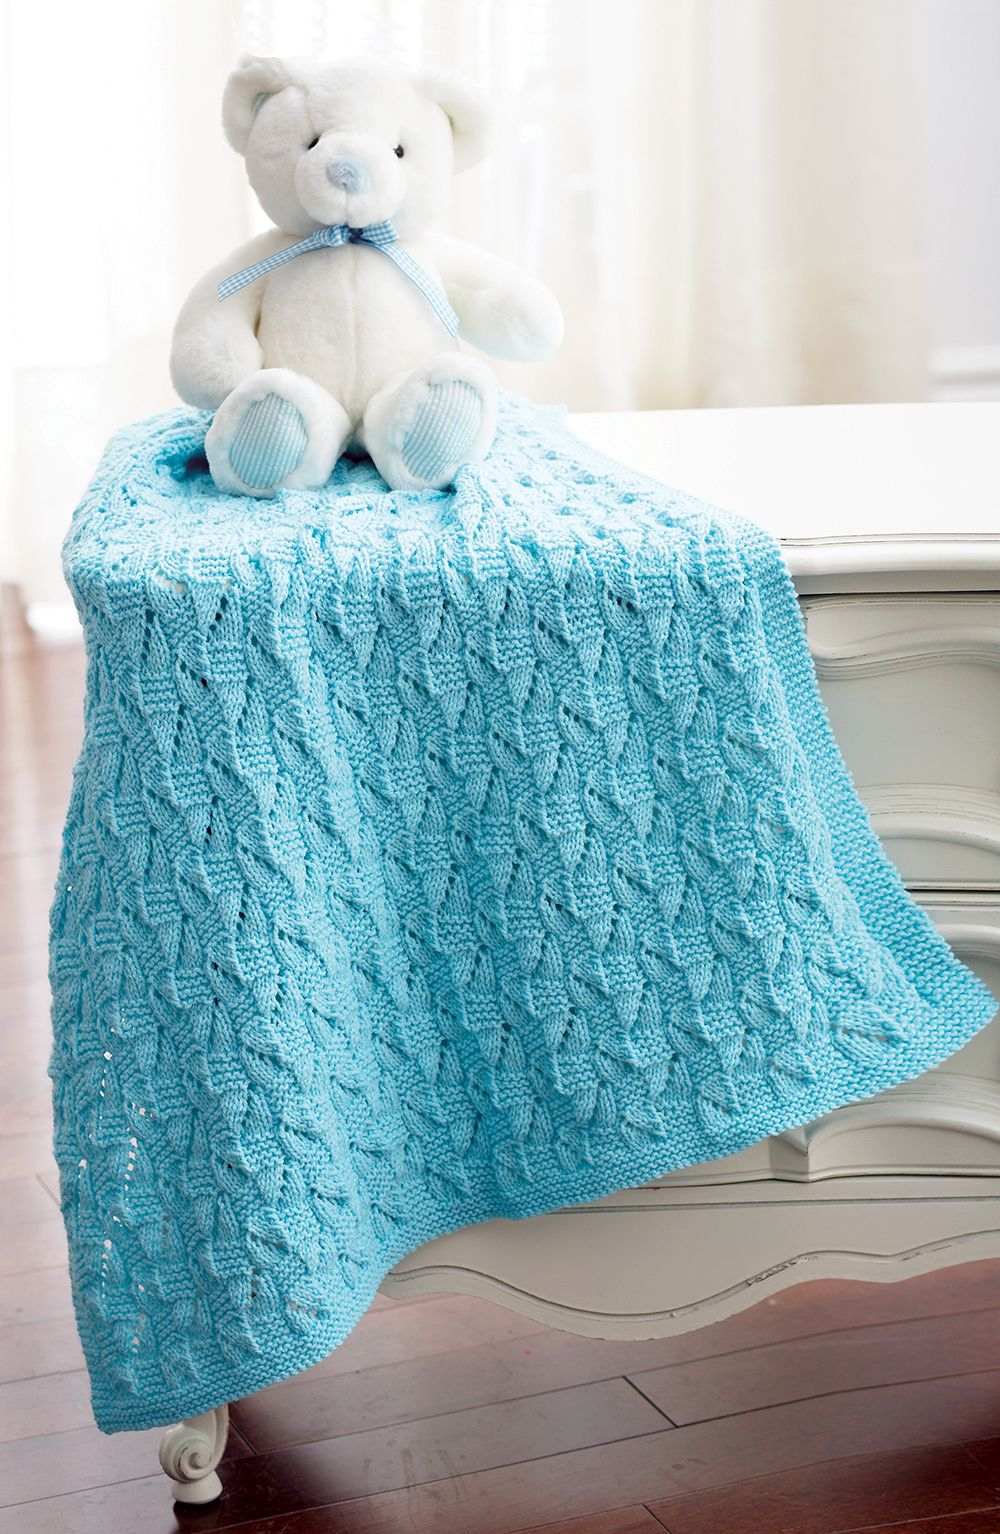 Knitted Squares Patterns Free Mary Maxim Free Staggered Squares Blanket Pattern